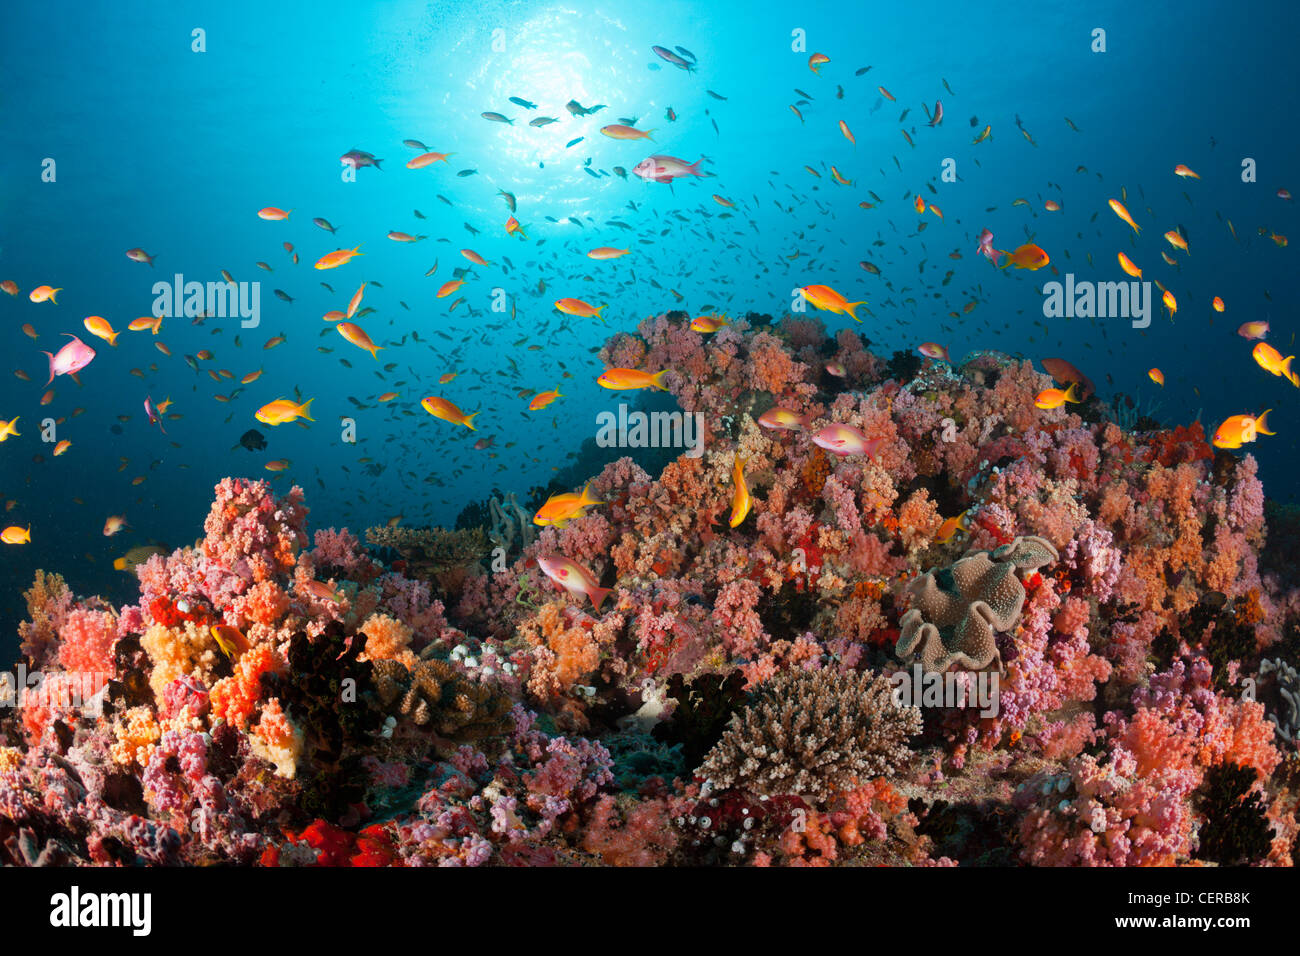 Anthias over Soft Corals, North Male Atoll, Indian Ocean, Maldives - Stock Image